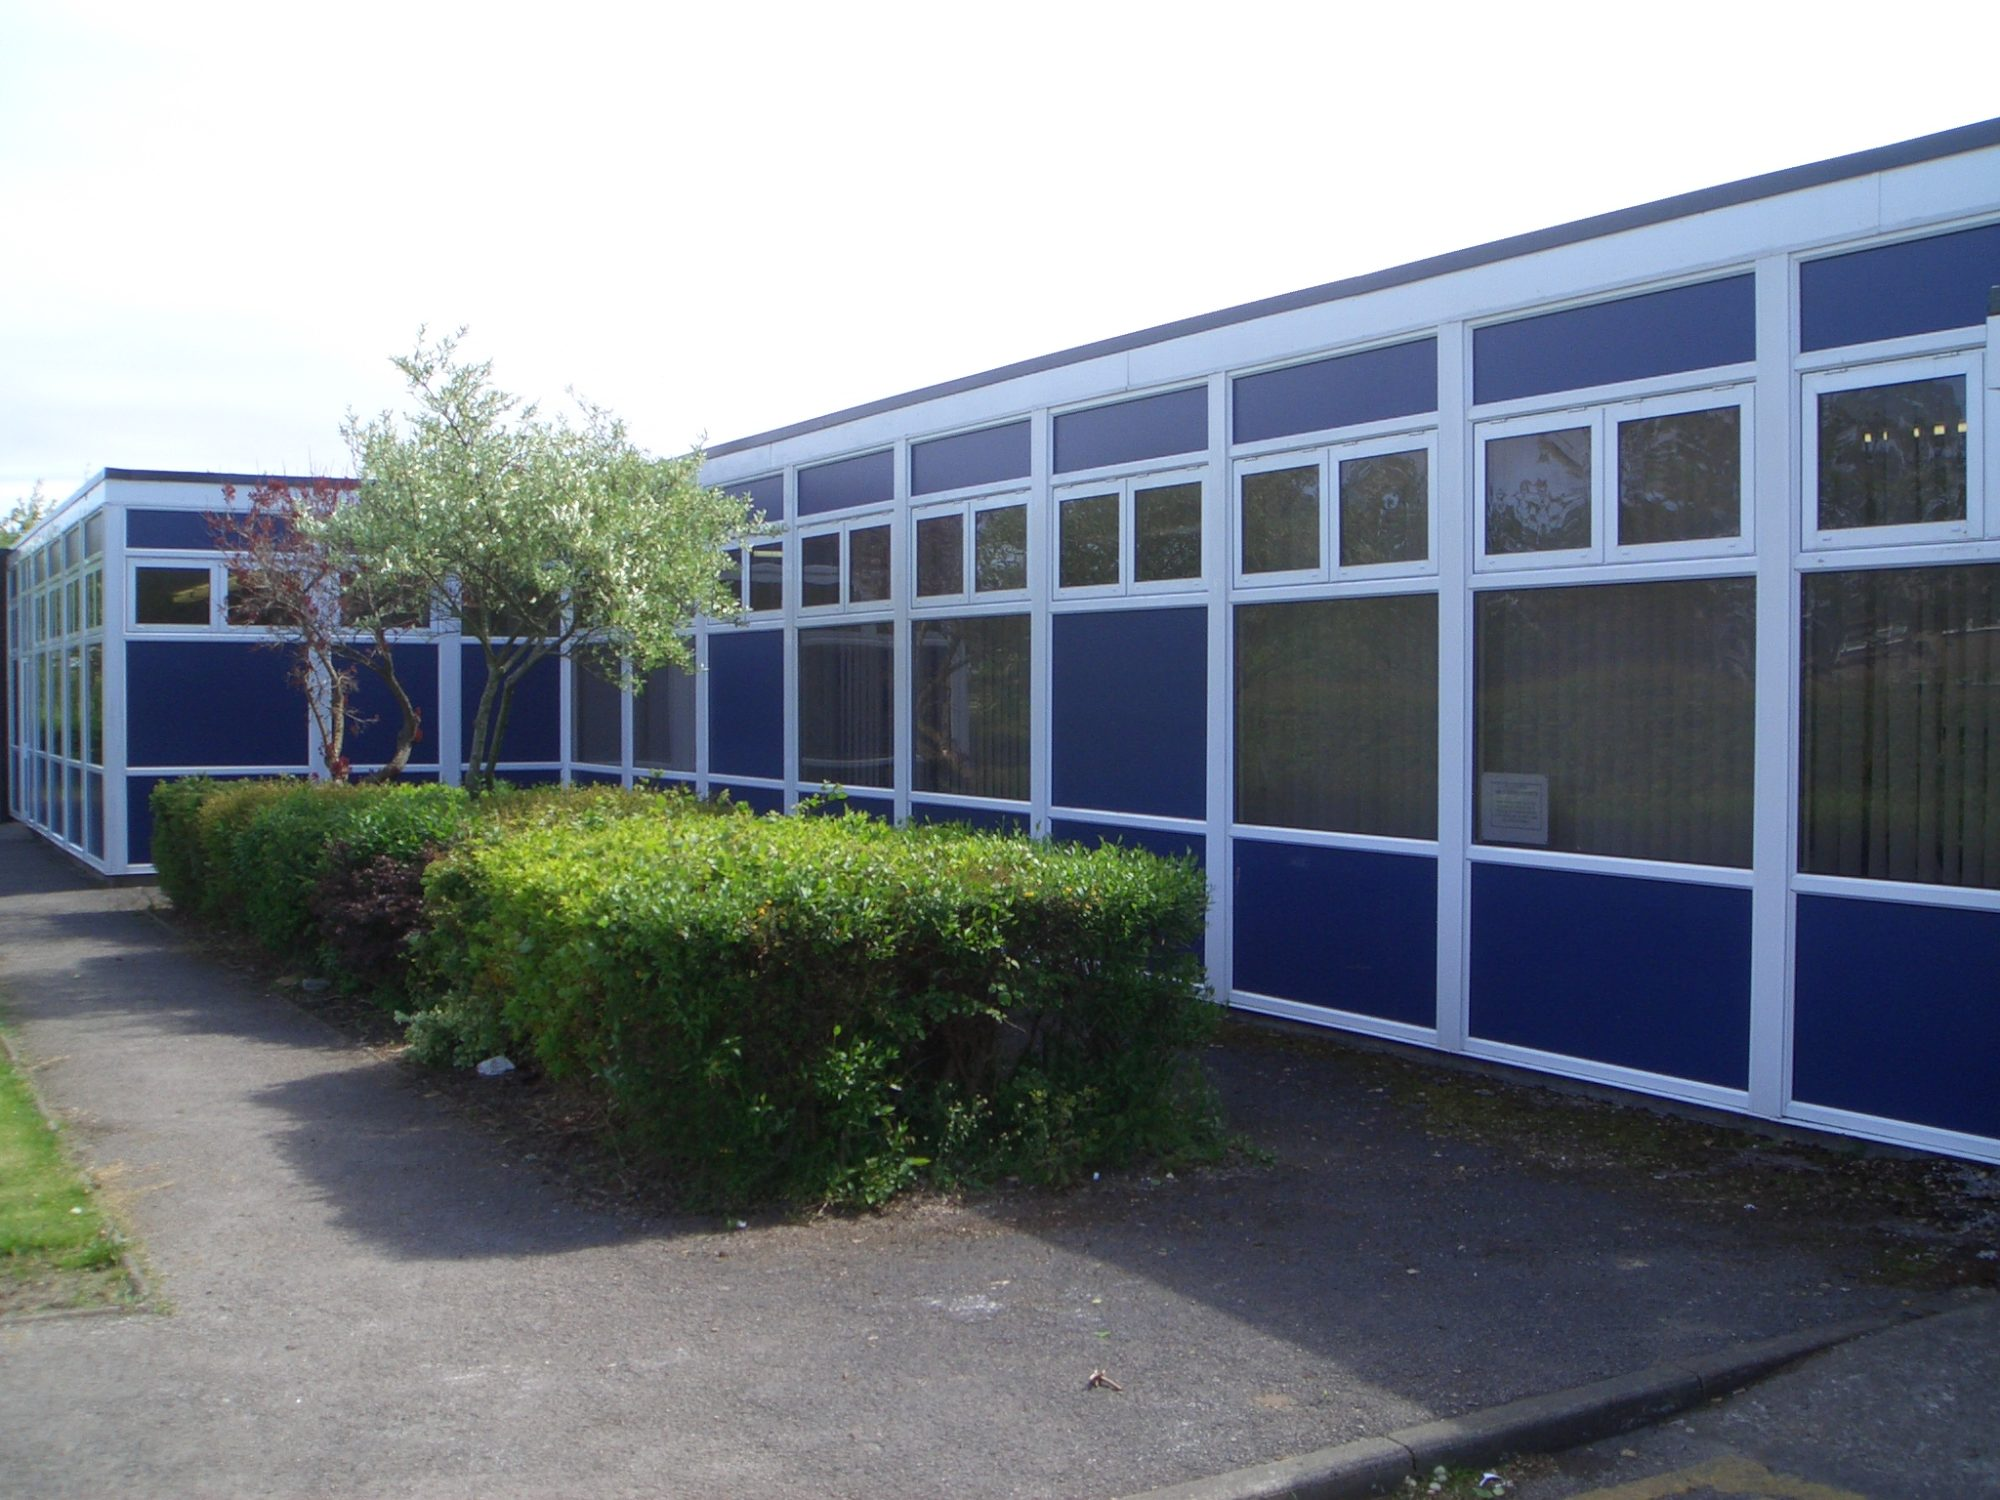 Black Horse Hill Junior School